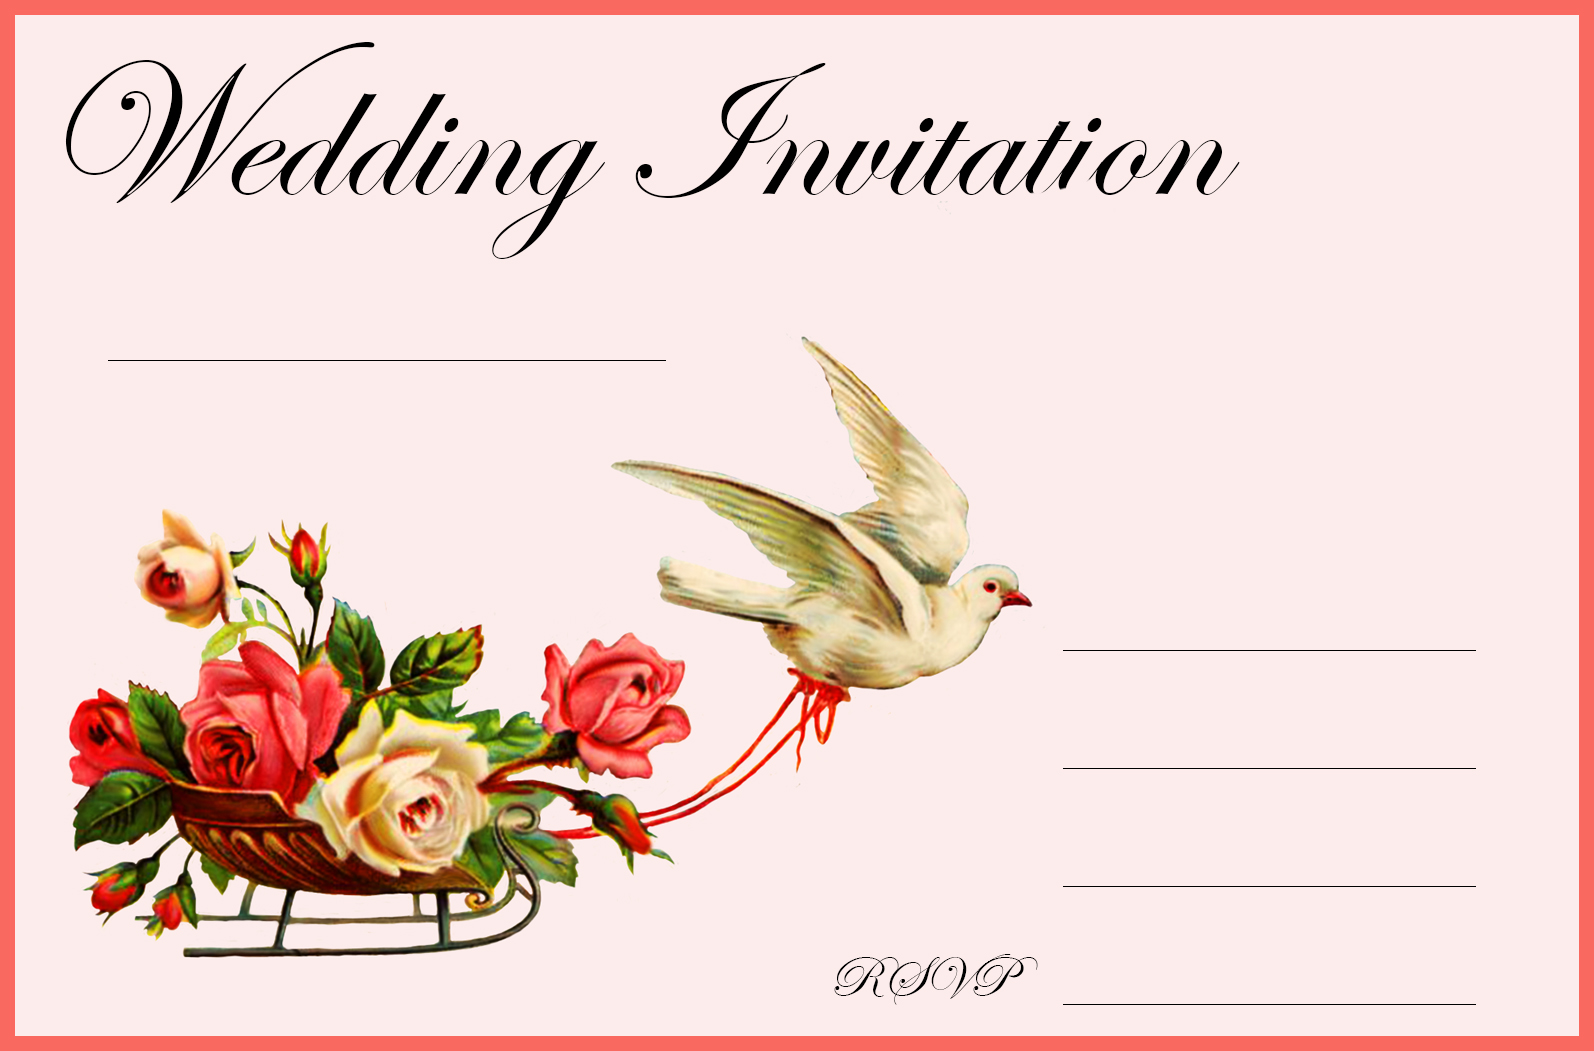 Wedding invitation with flowers and textlines